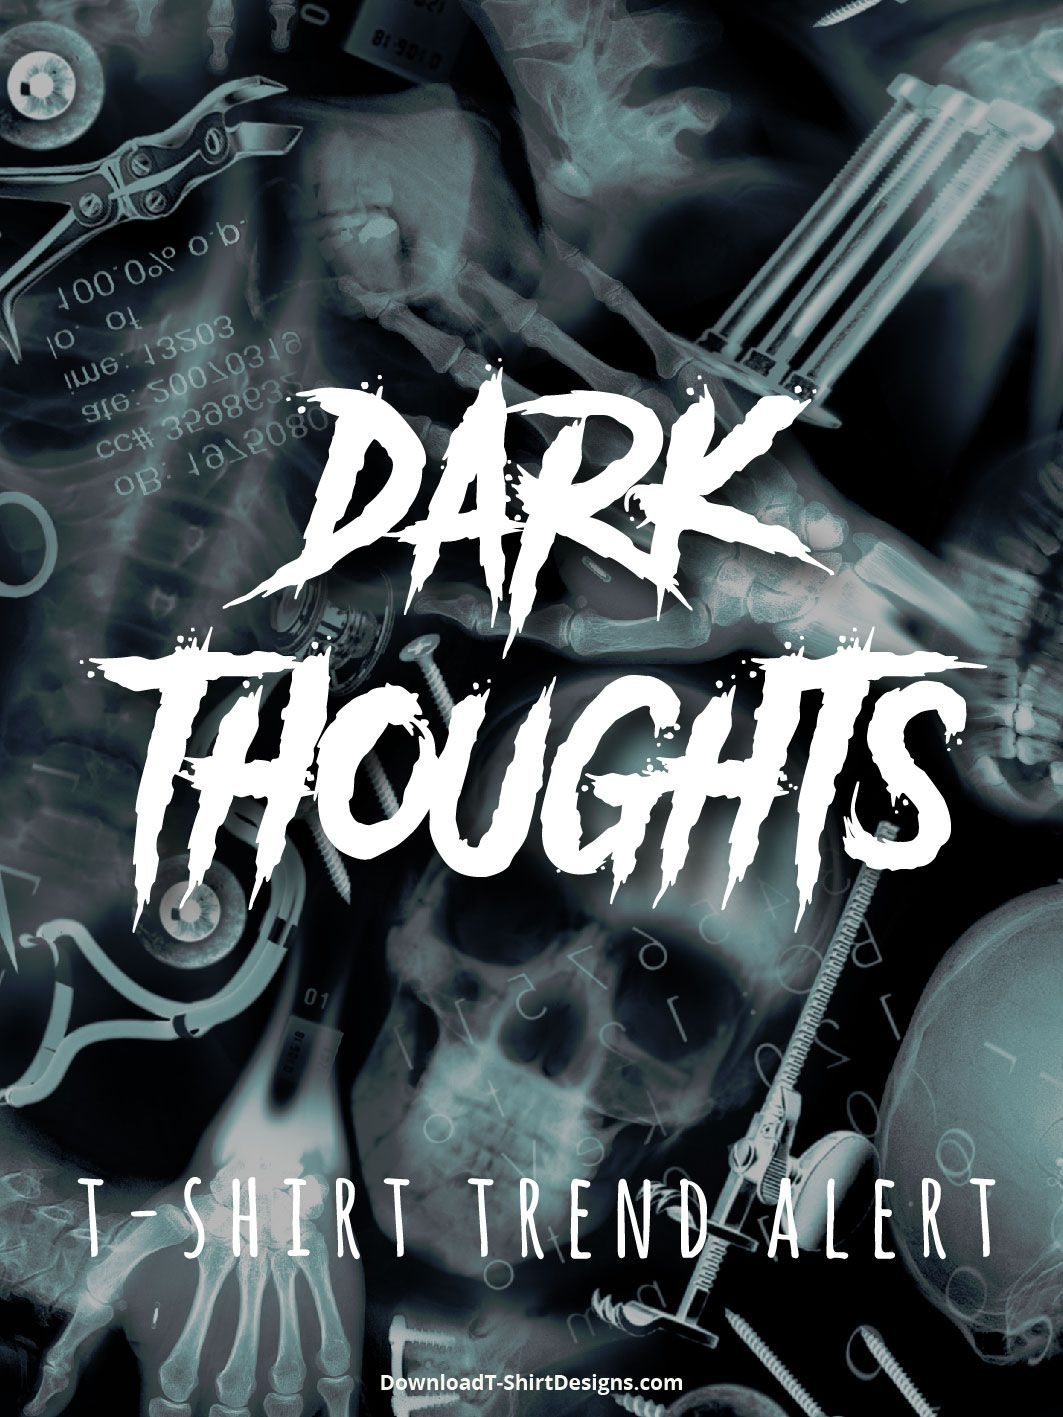 Shirt design blog - Are You Ready To Explore The Darker Side Of T Shirt Design Check Out